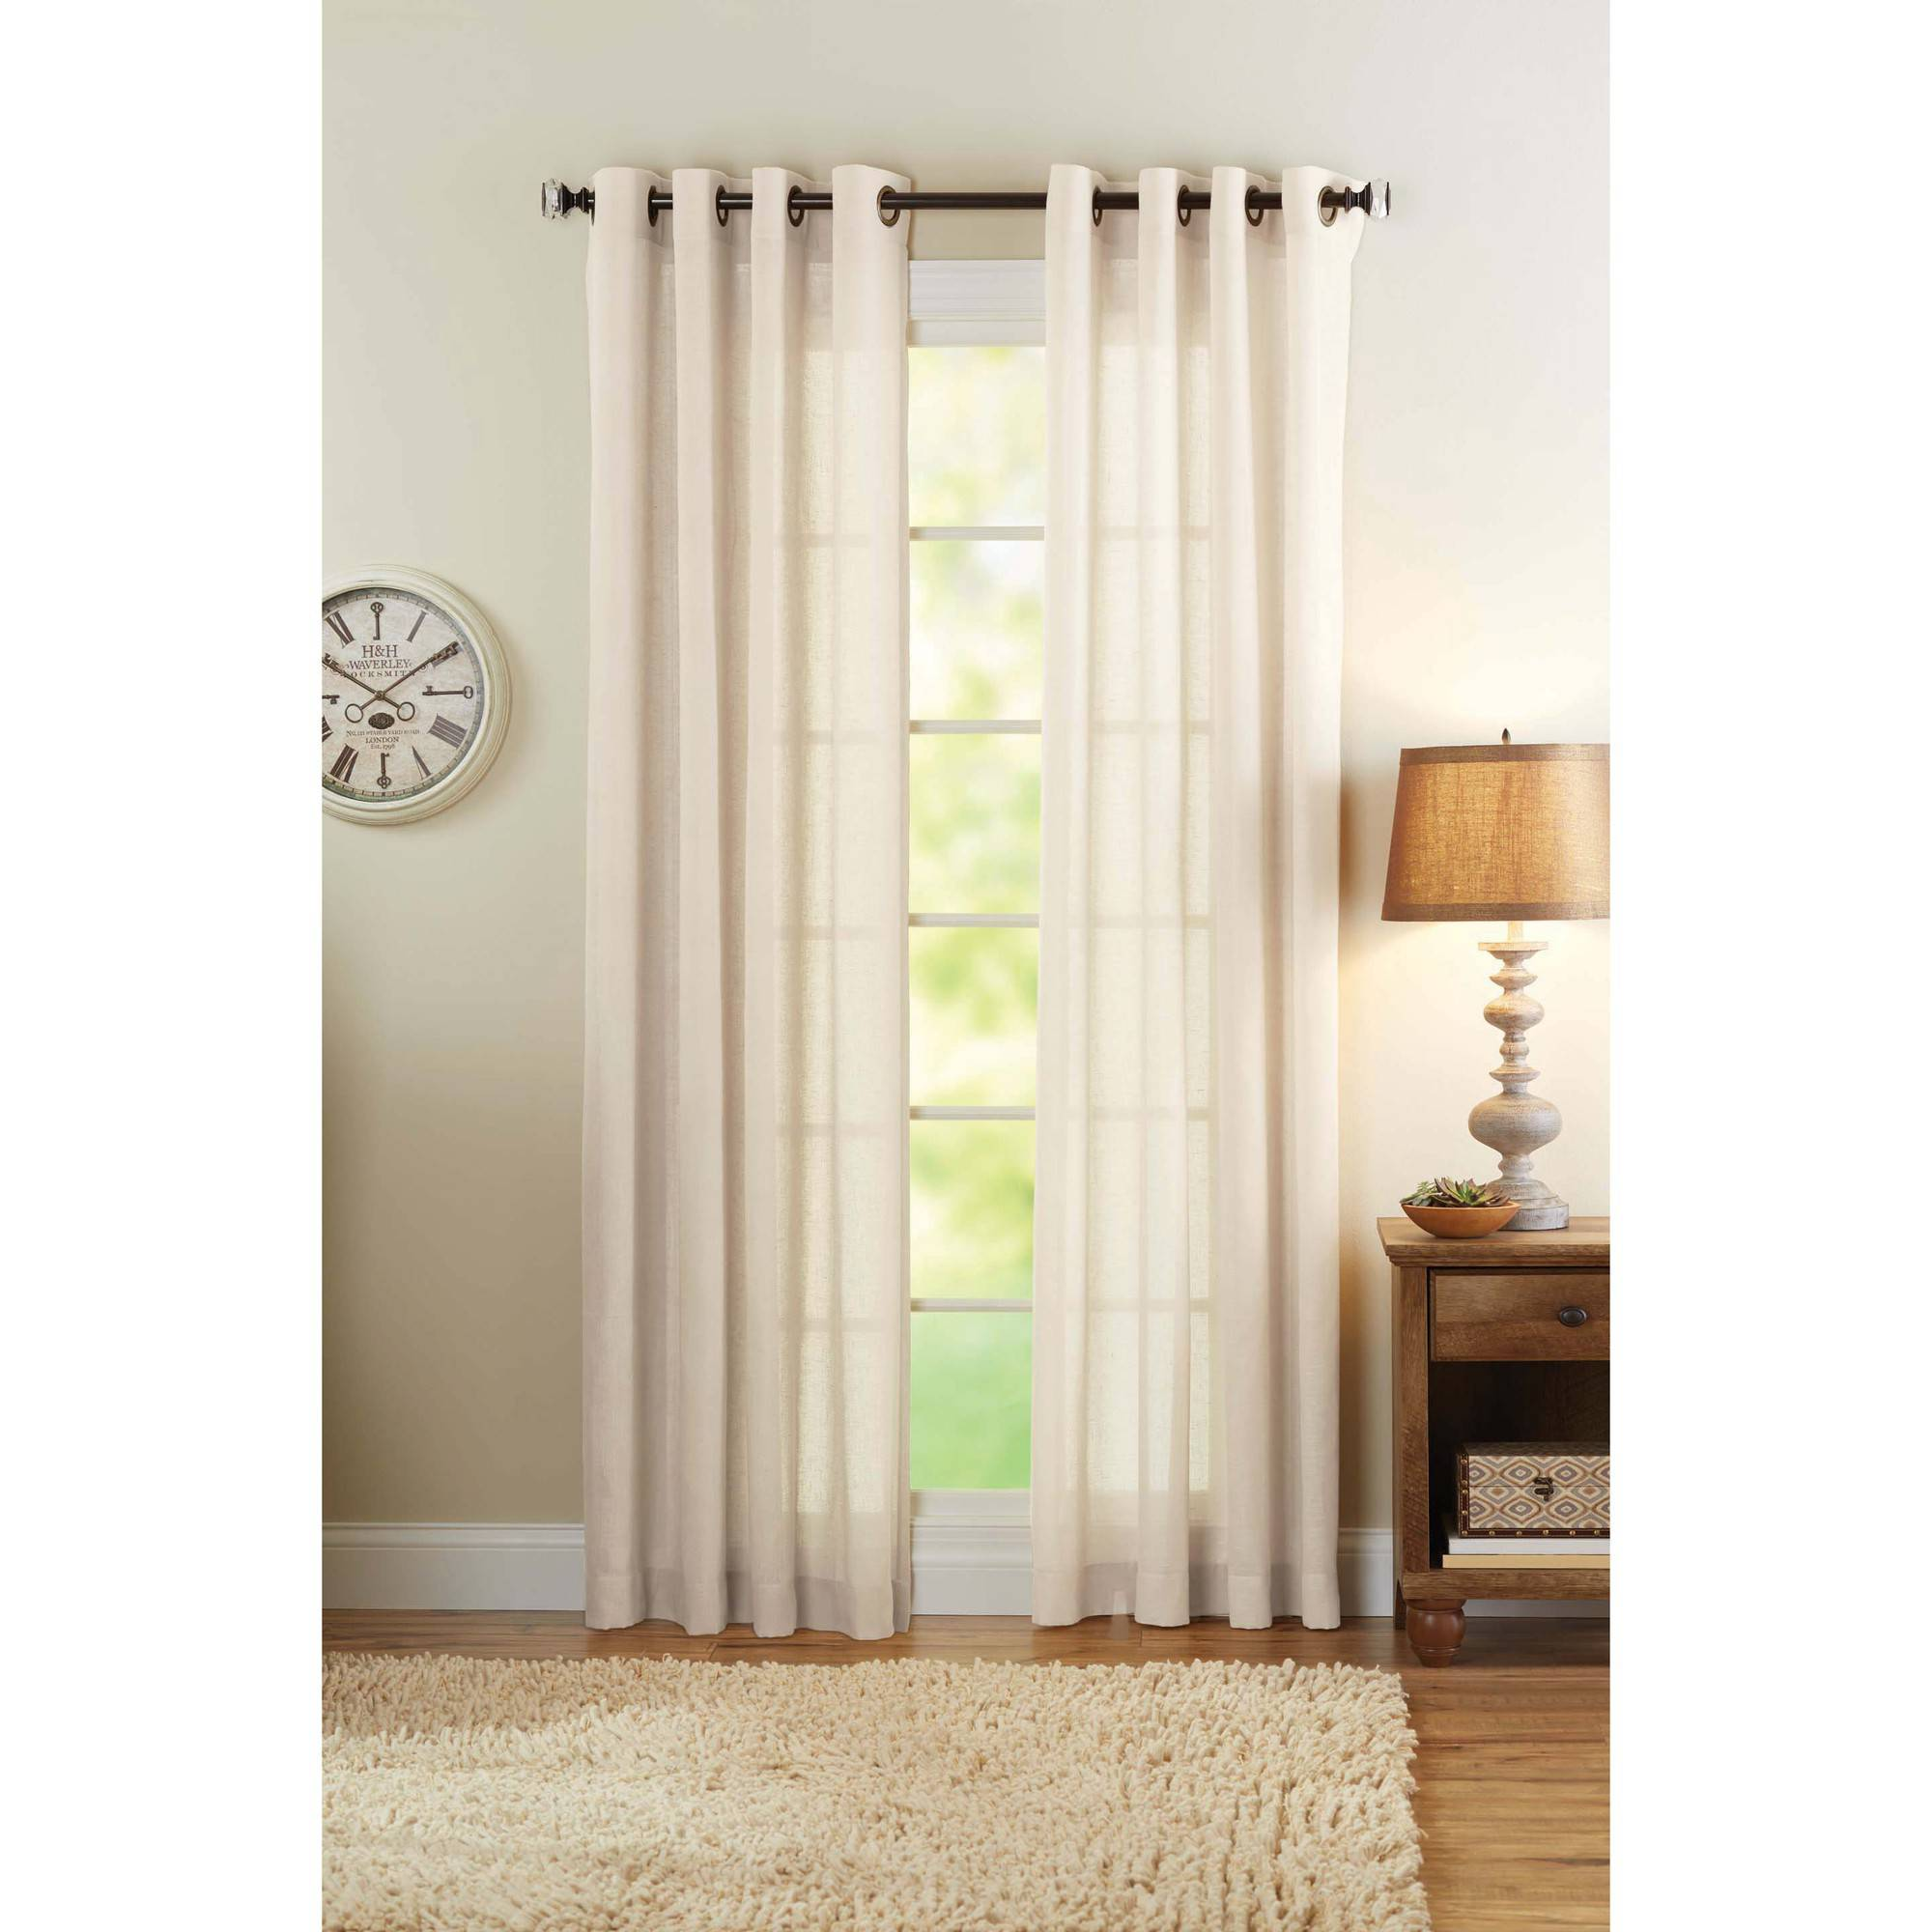 Better Homes And Gardens Semi Sheer Grommet Curtain Panel, Bleached Linen by Better Homes & Gardens